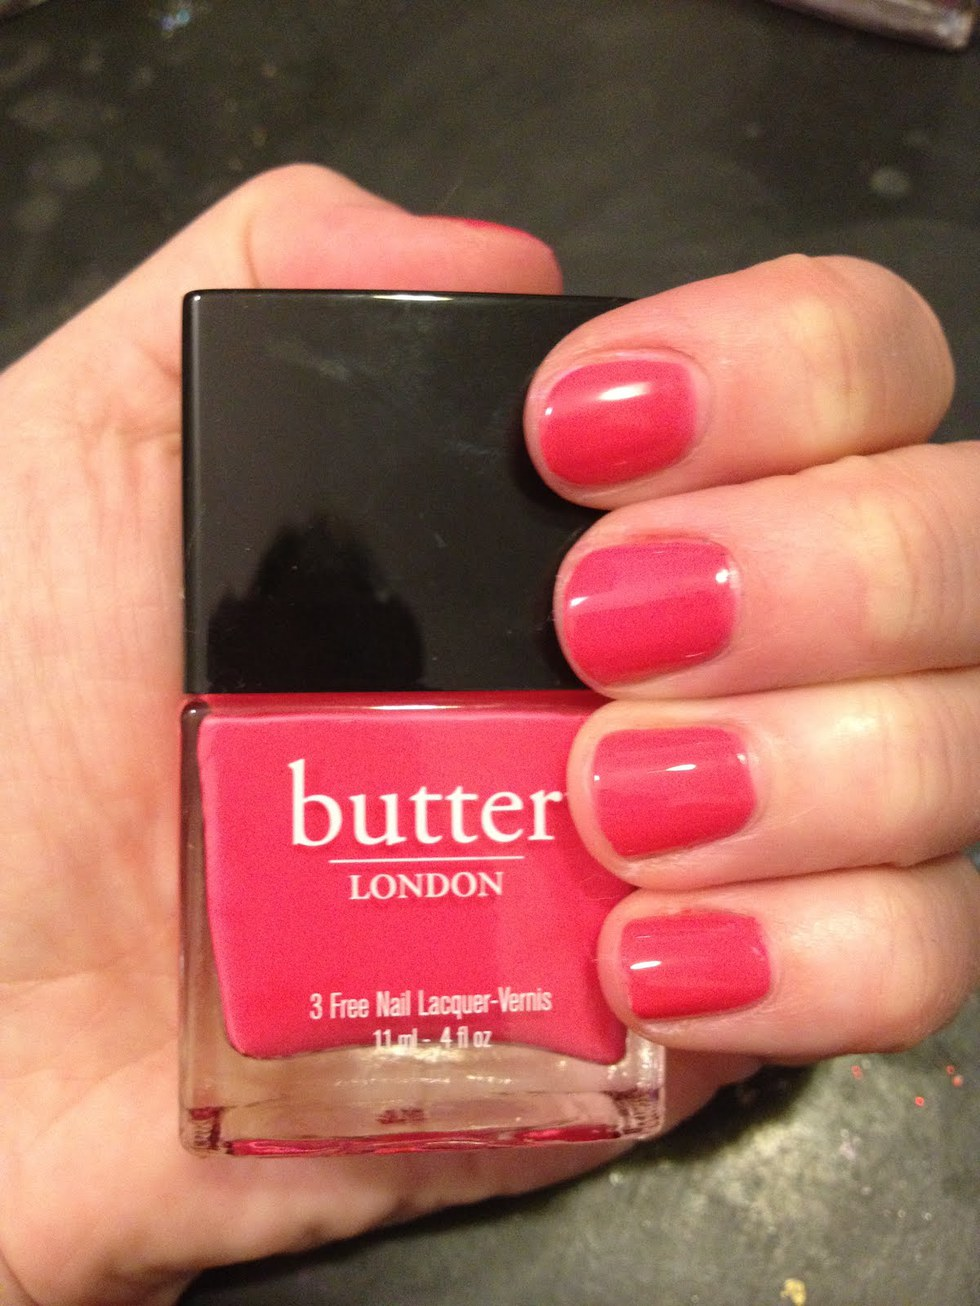 16 Of The Weirdest, Whackiest And Grossest Nail Polish Names